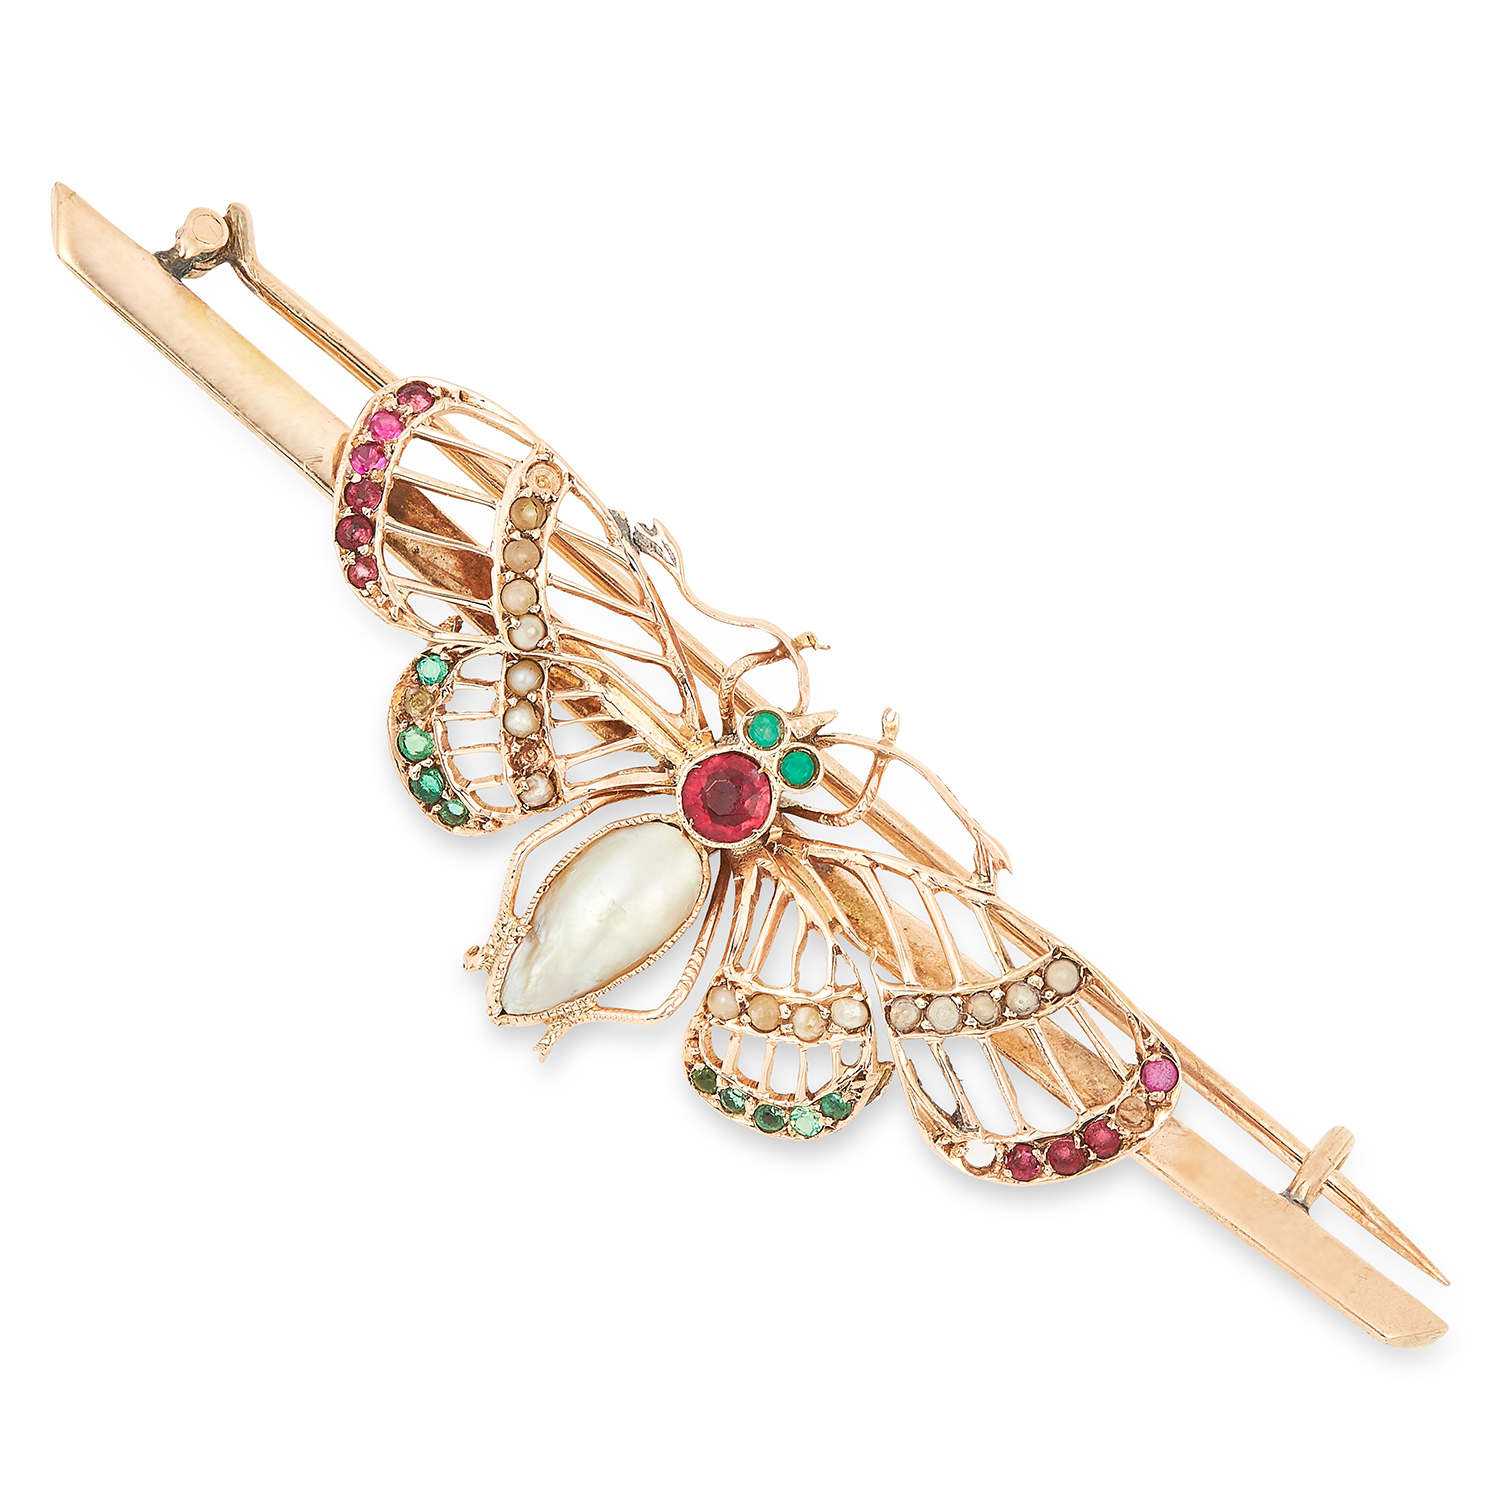 GEMSET BUTTERFLY BROOCH set with pearls, round cut rubies and emeralds, 6.7cm, 5.6g.